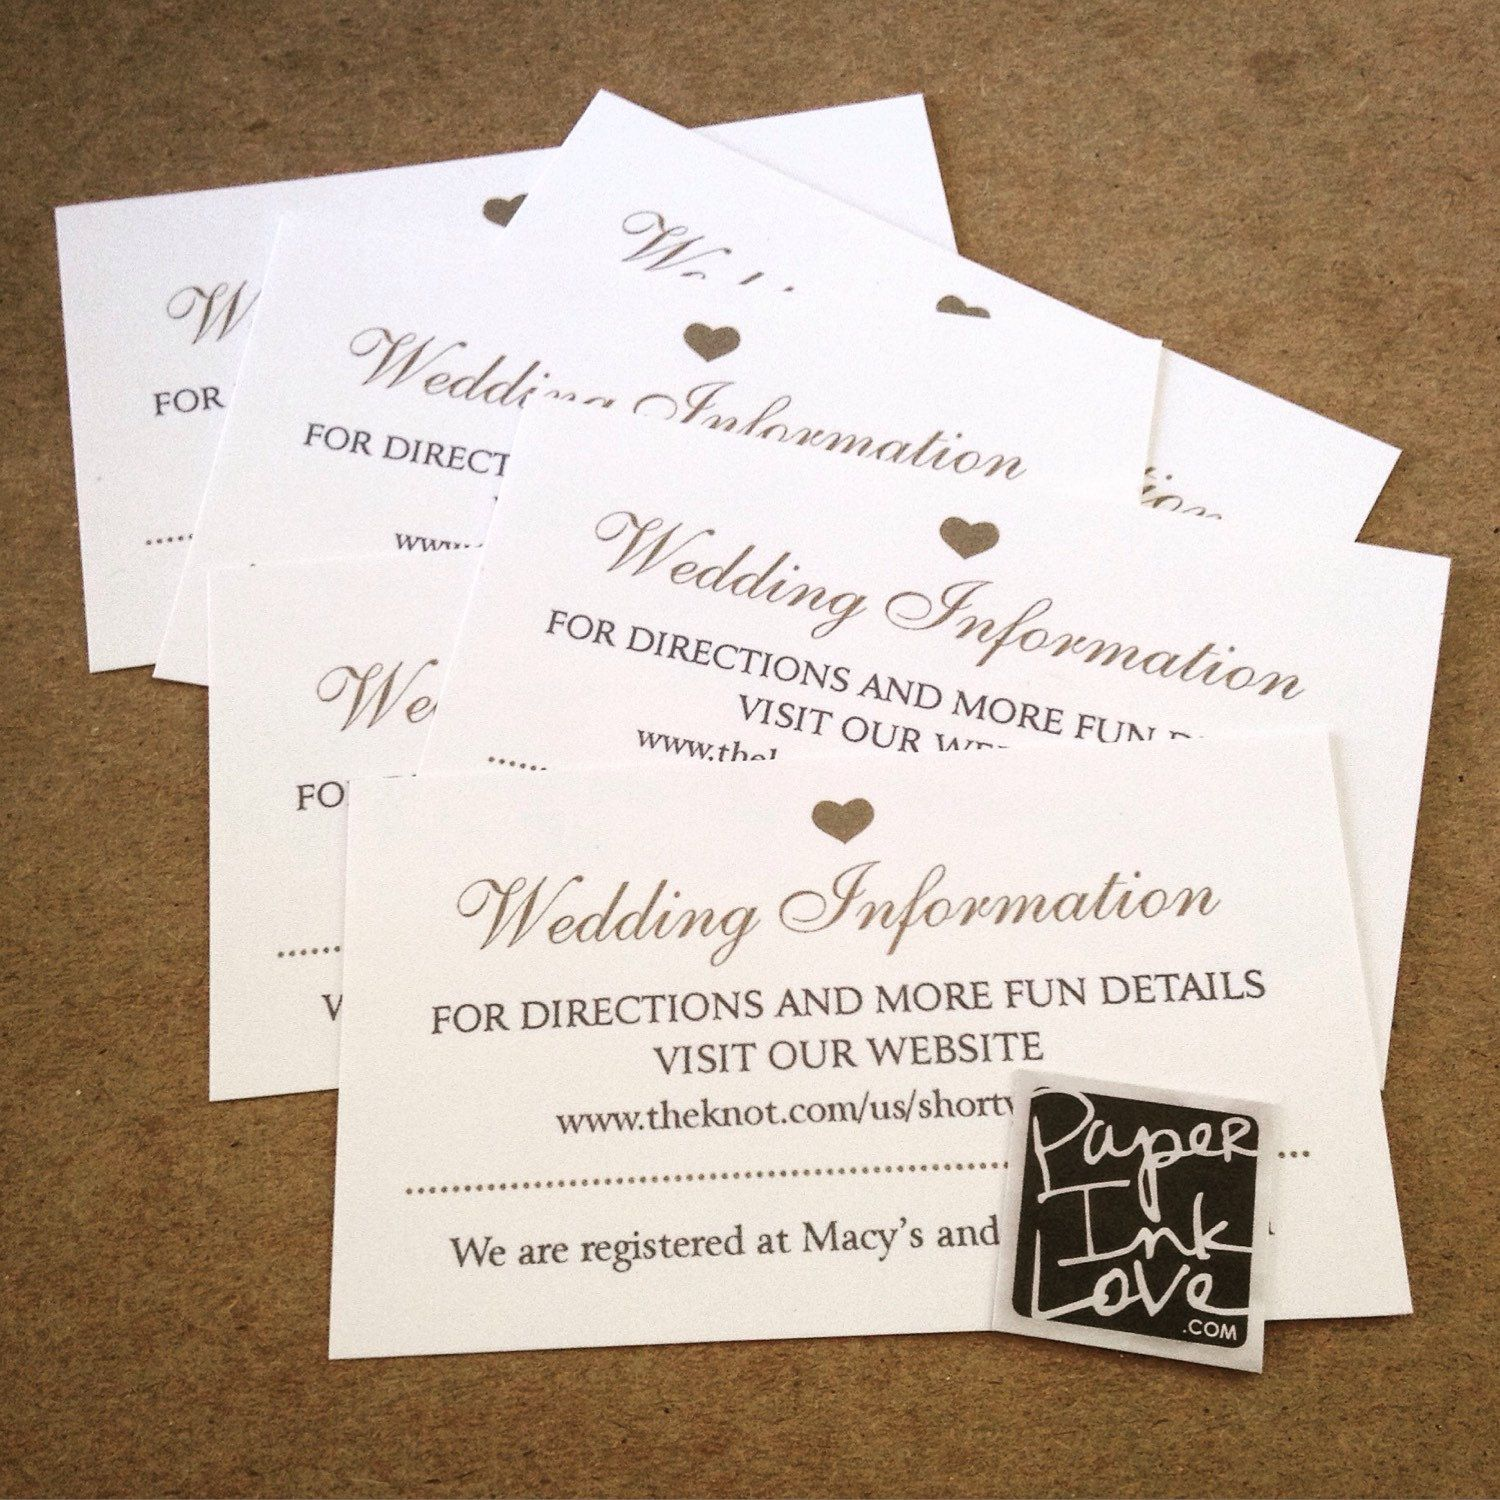 Best Places For A Wedding Registry: Wedding Website Cards, Enclosure Cards, Wedding Hashtag